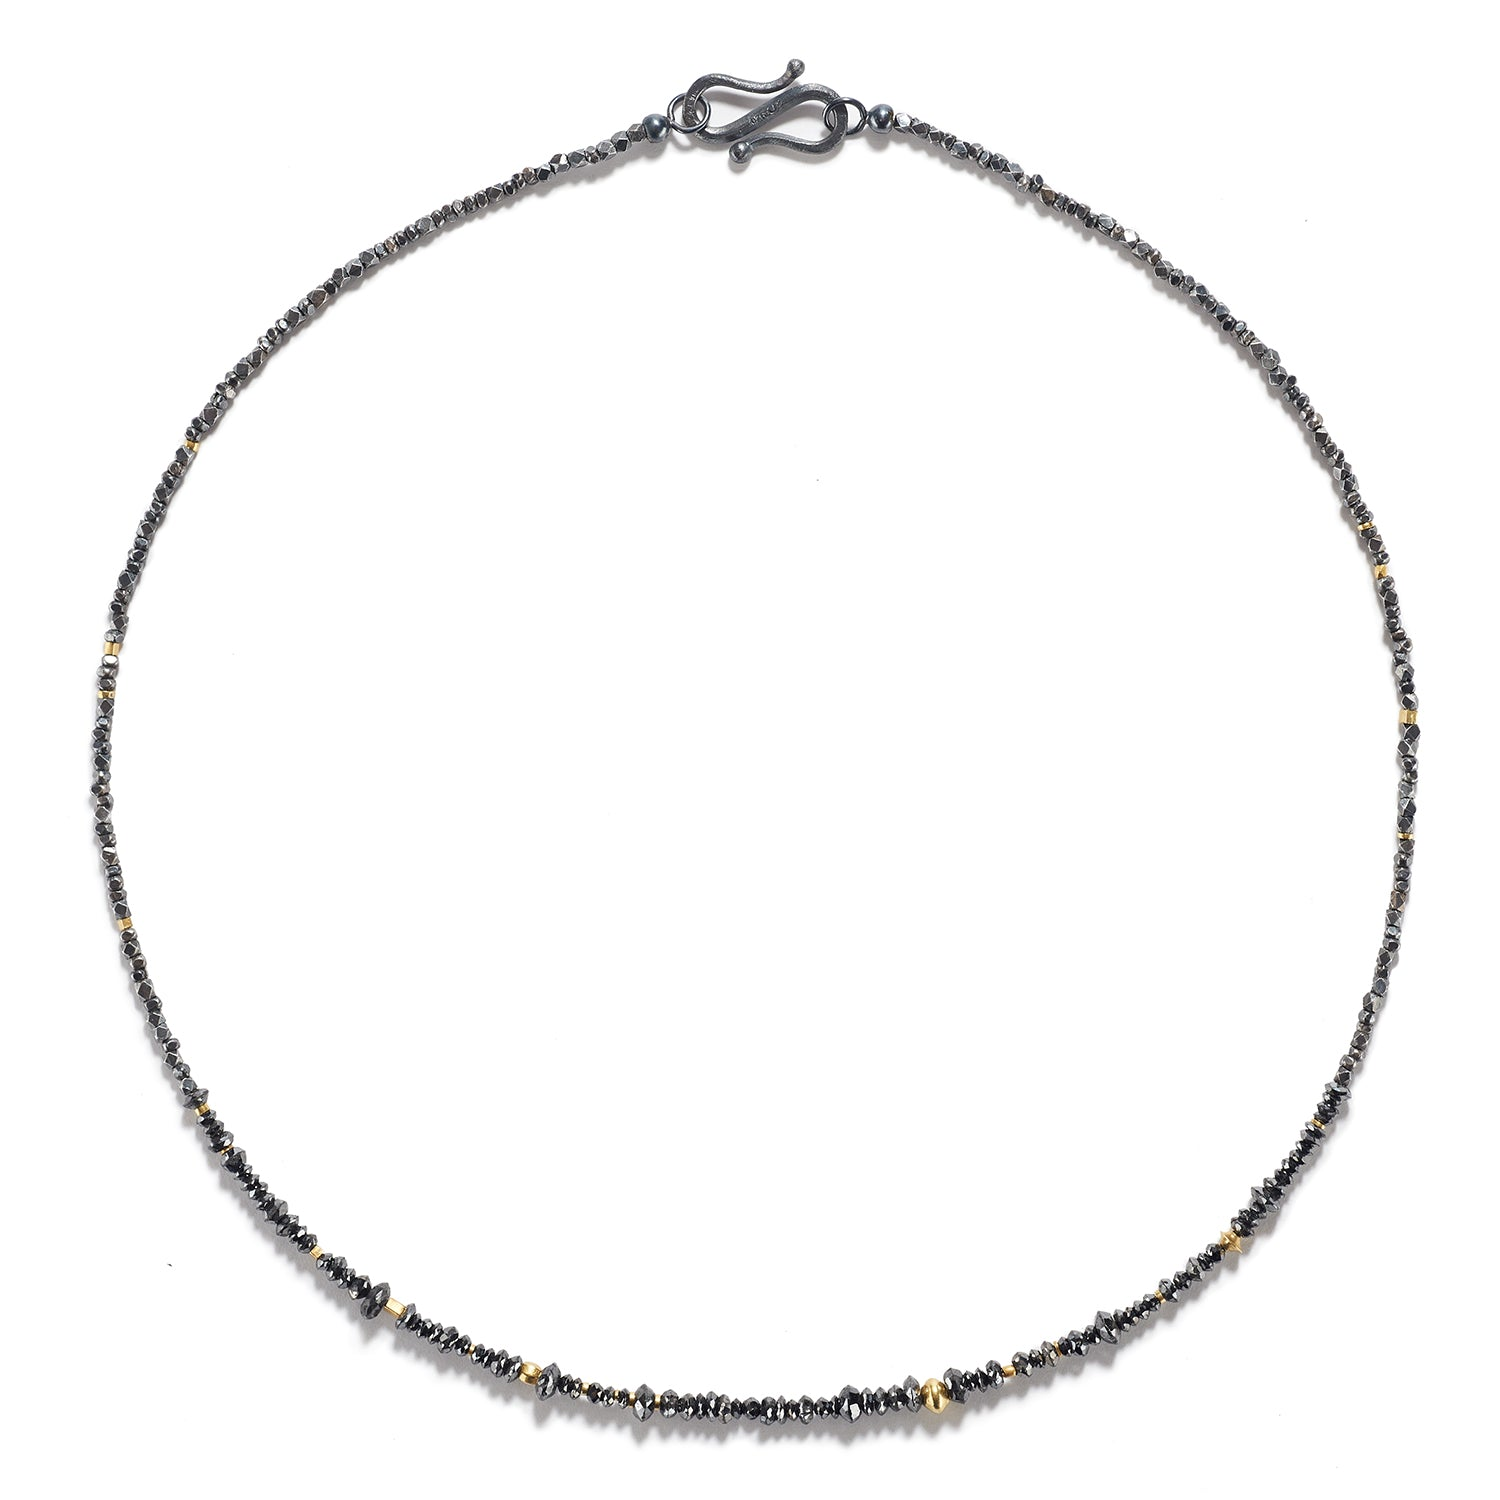 Antique Silver & Gold Necklace with Black Diamonds